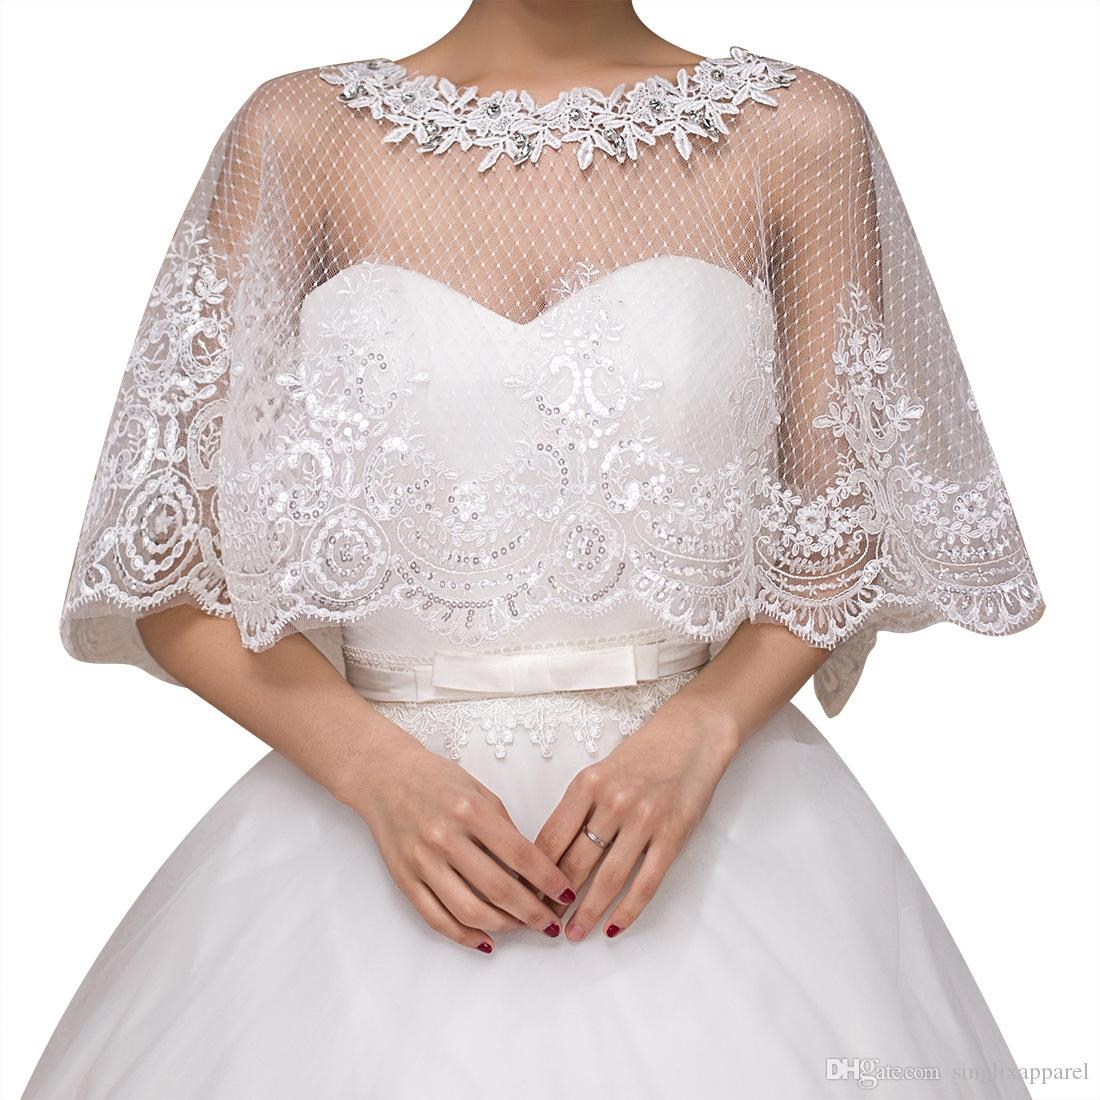 Wedding Embroidered Lace Tulle Shrug Summer Bridal Lace Shawl Tulle Wraps for Bridesand Bridesmaids Girls Lace Stole